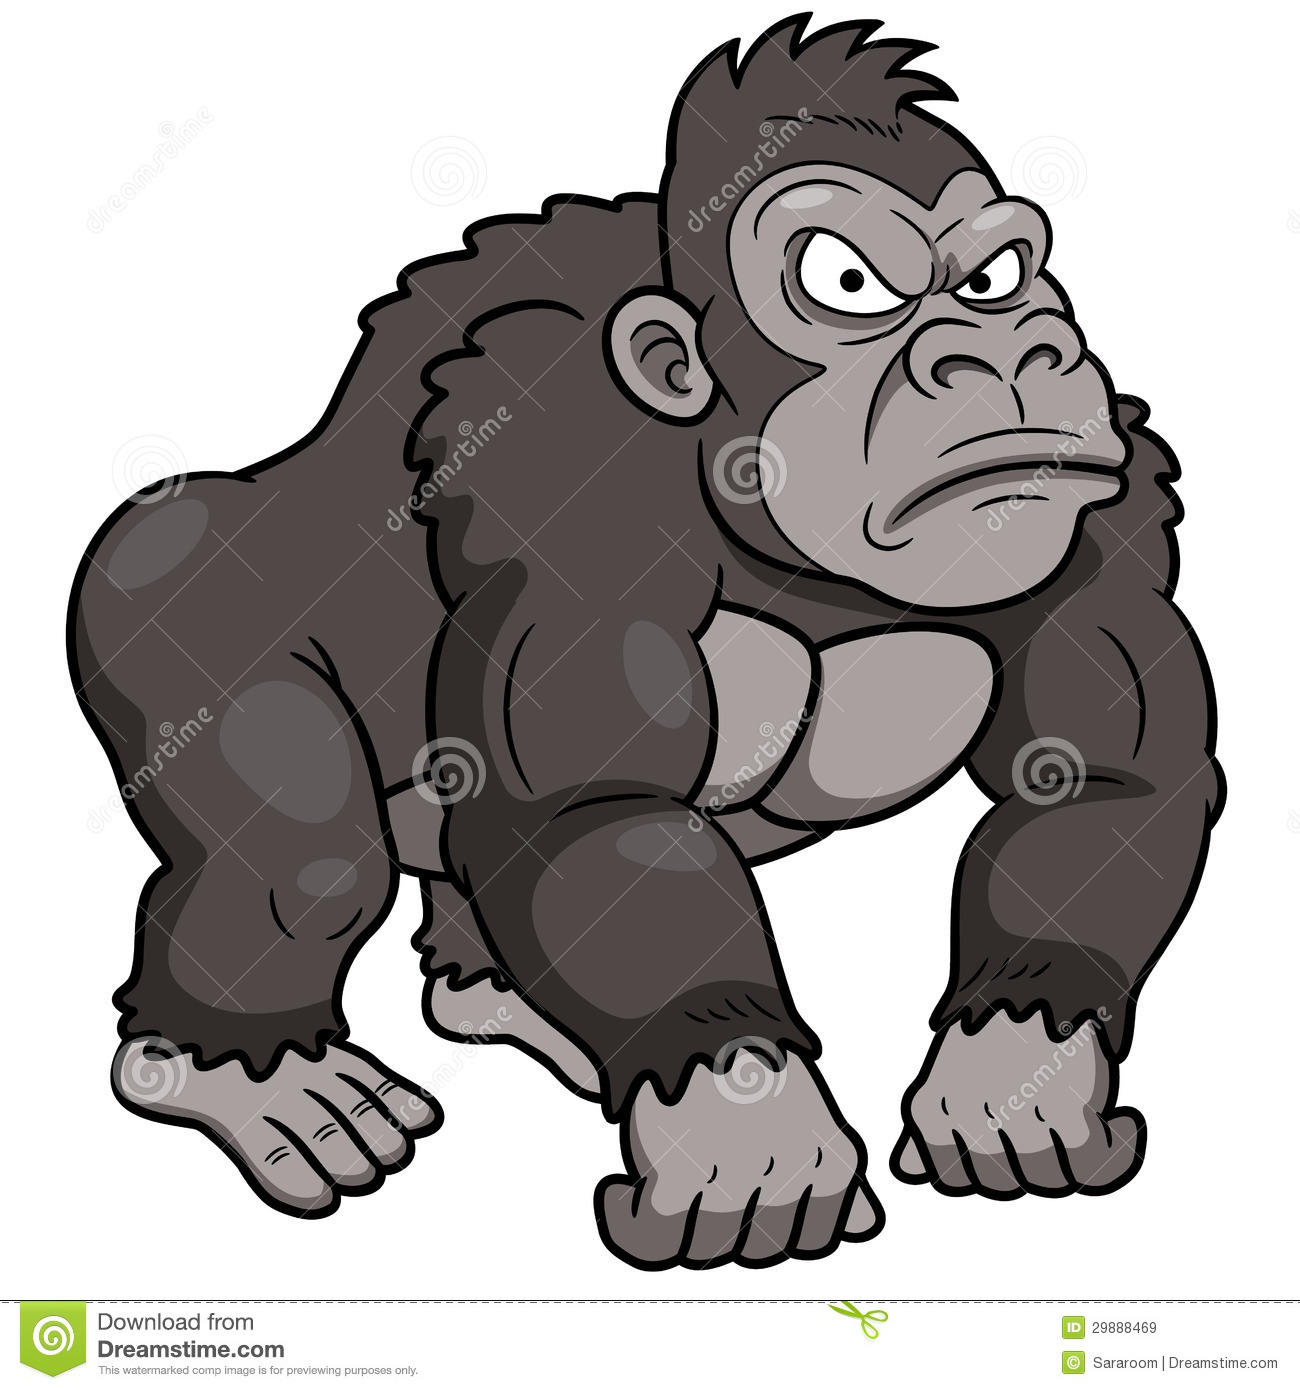 cartoon gorilla royalty free stock images image 29888469 Snow Shoveling Cartoon Snow Blower